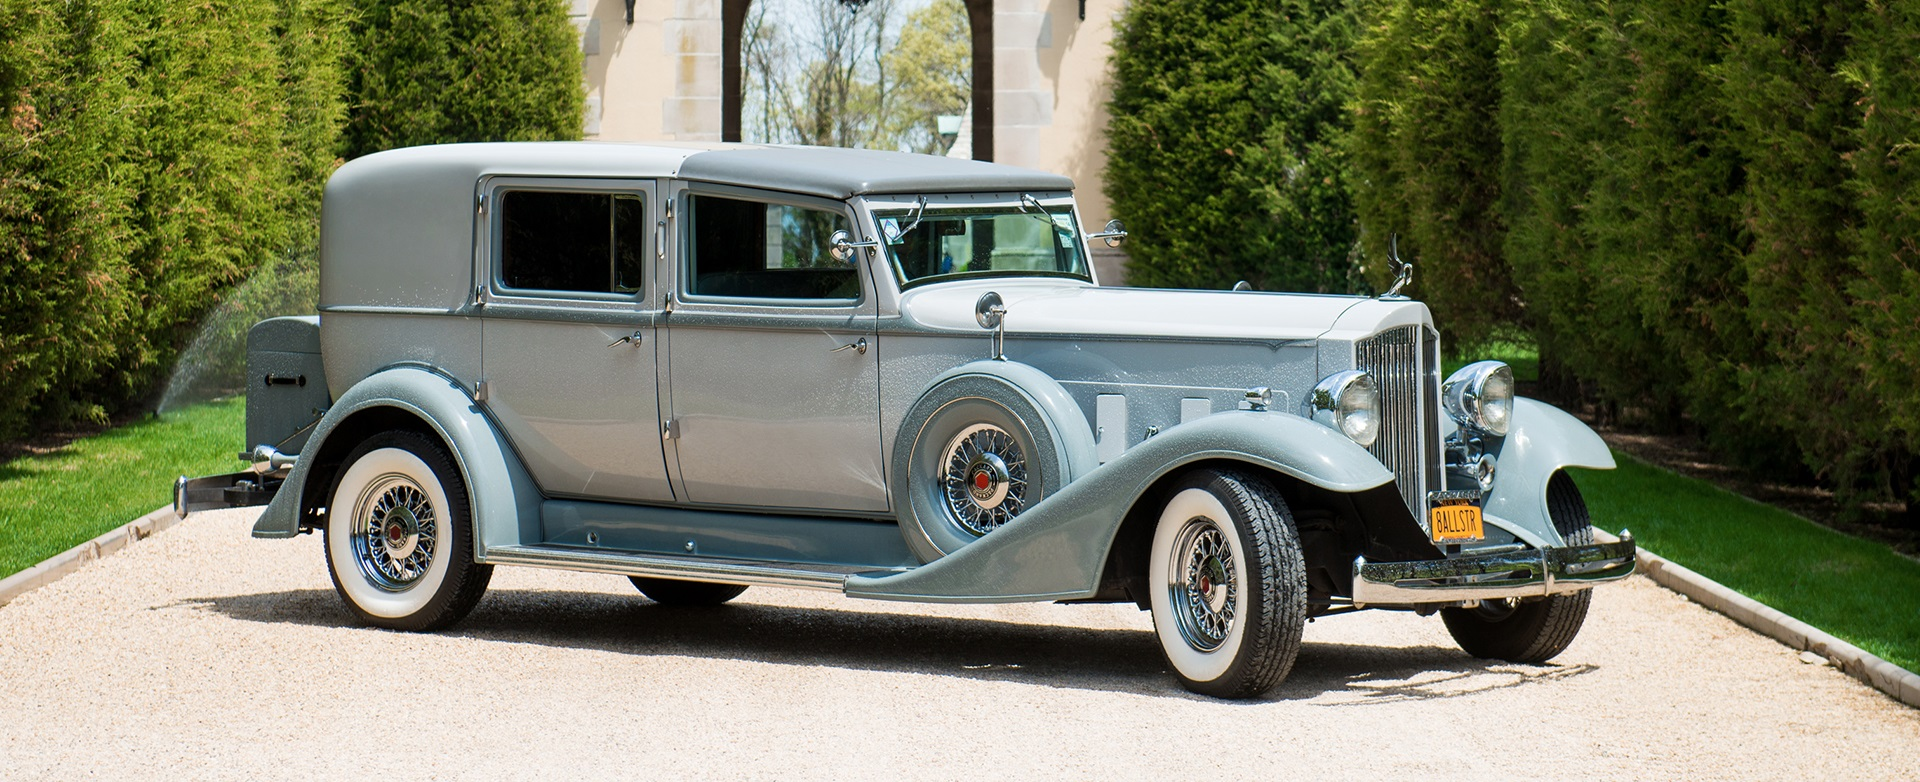 The 1933 Presidential Packard